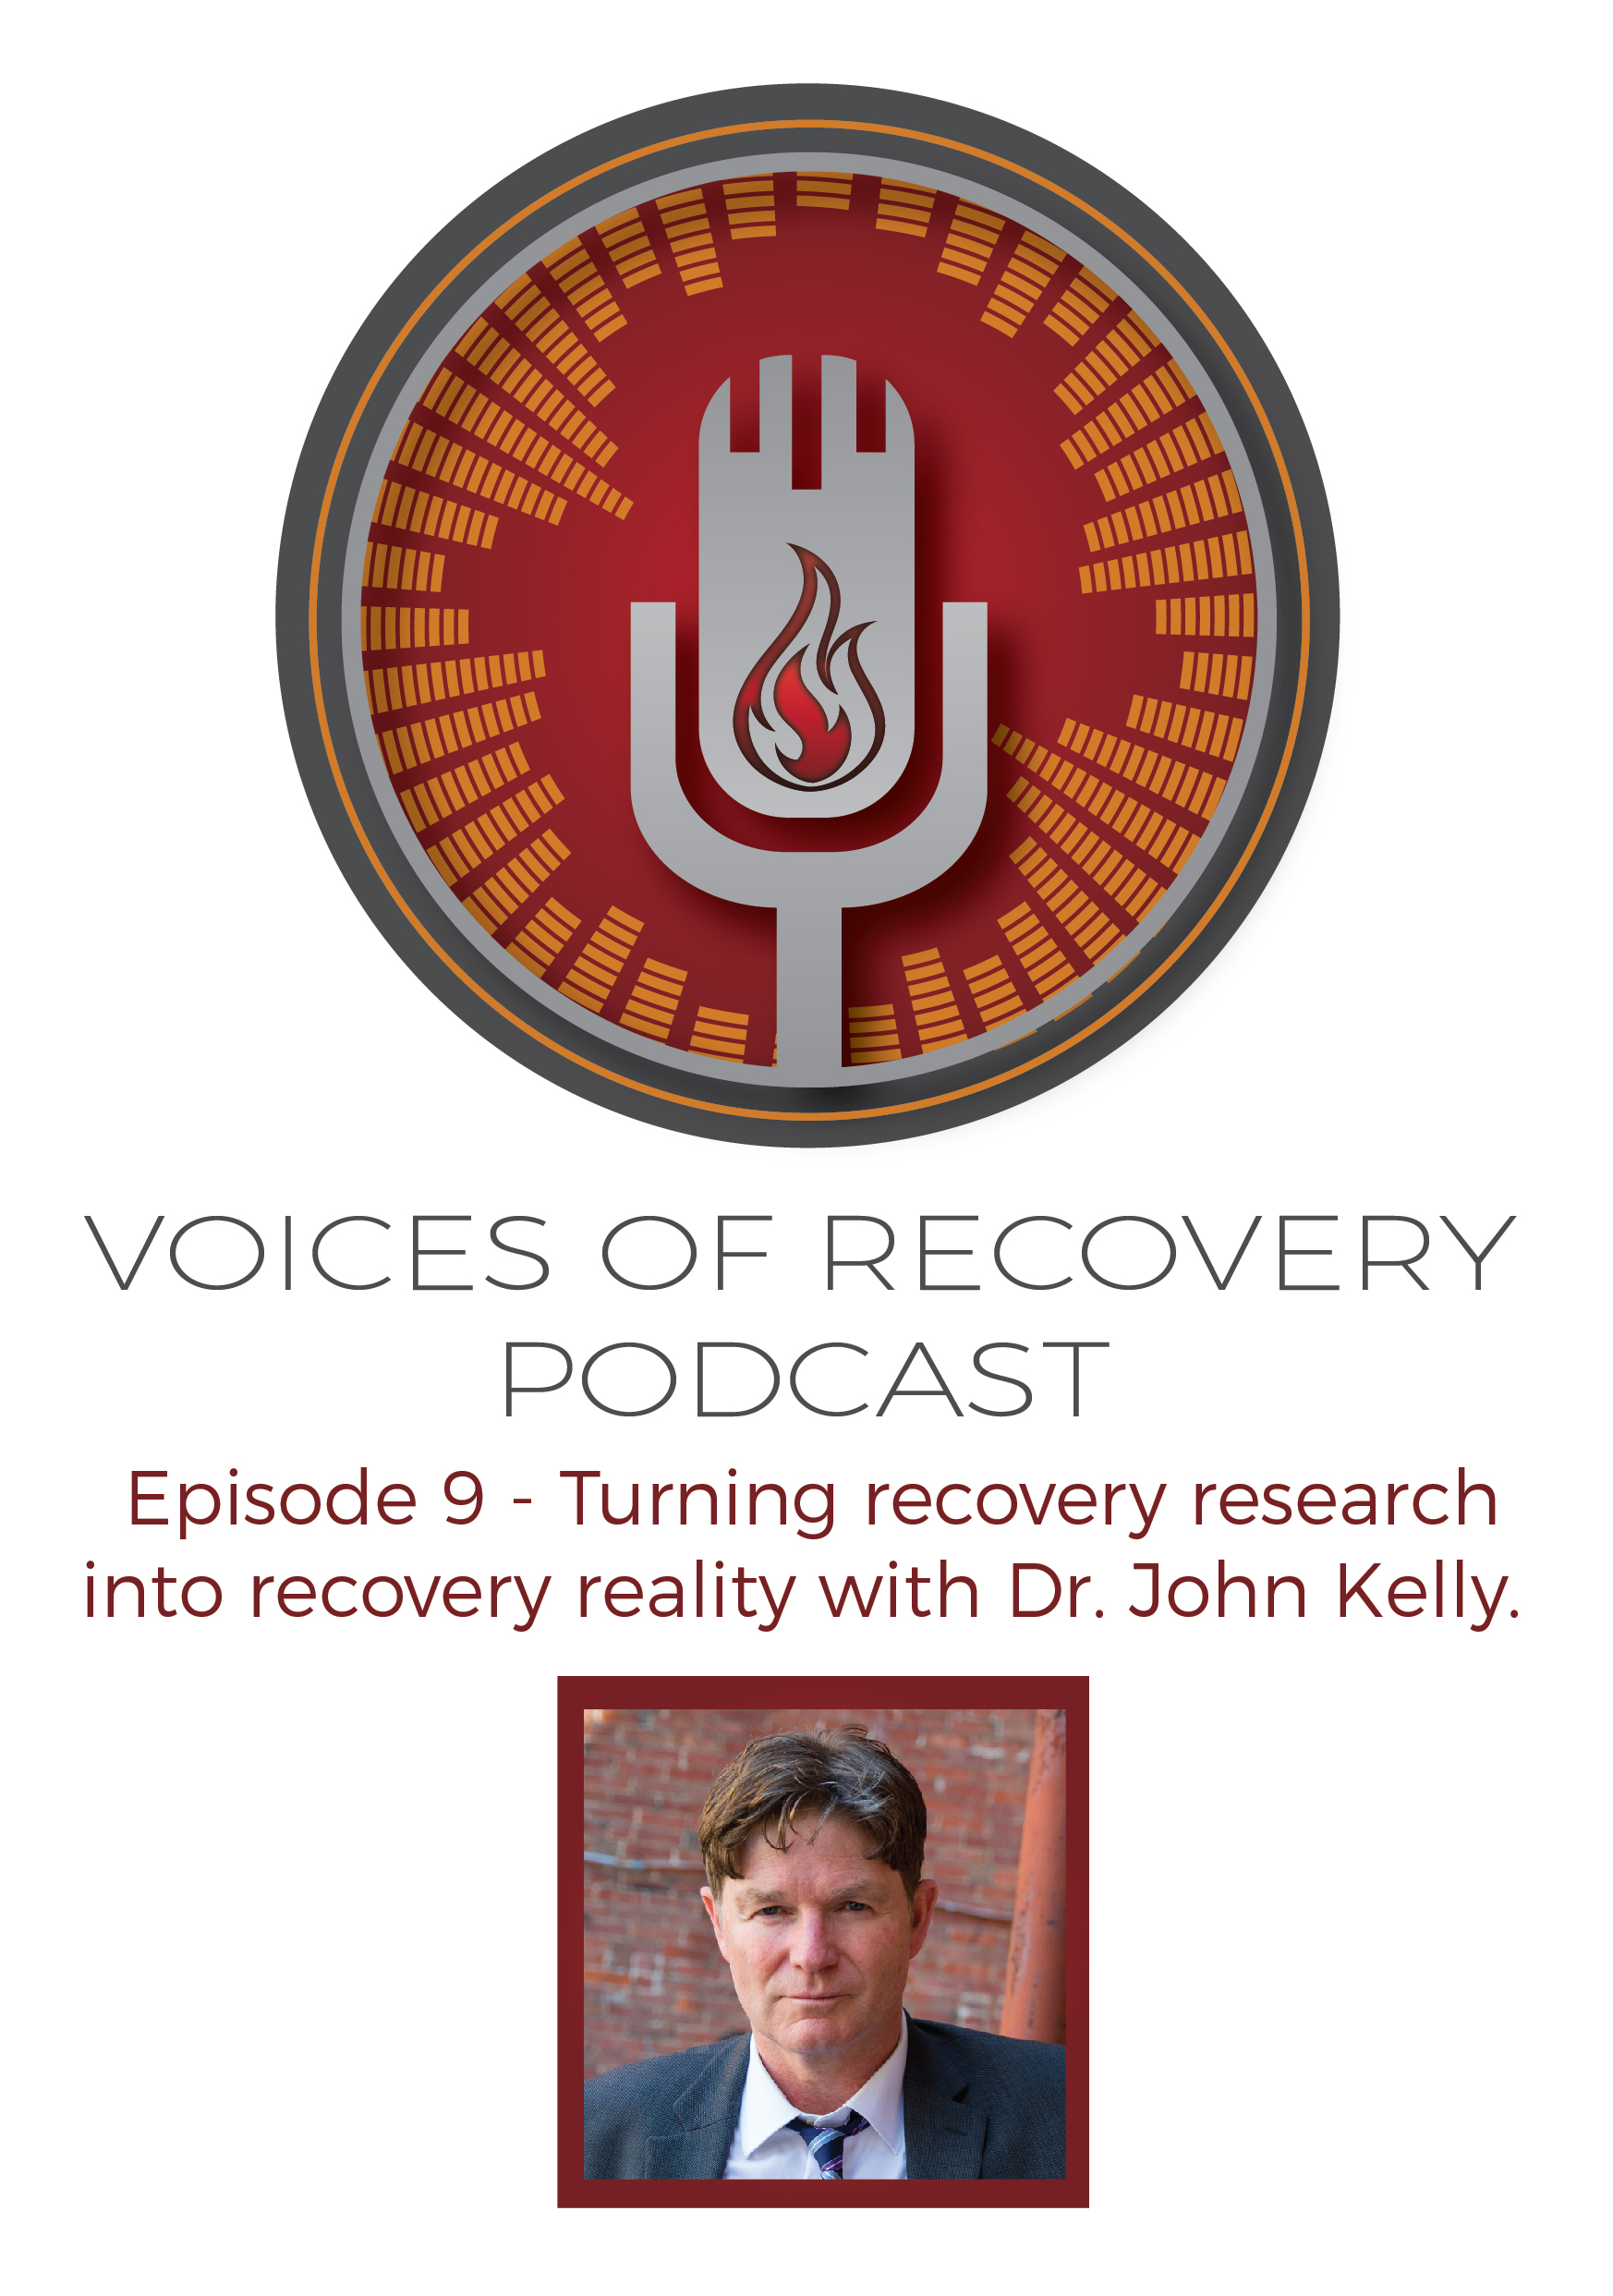 Voices of Recovery Episode 9: Turning Recovery Research Into Recovery Reality